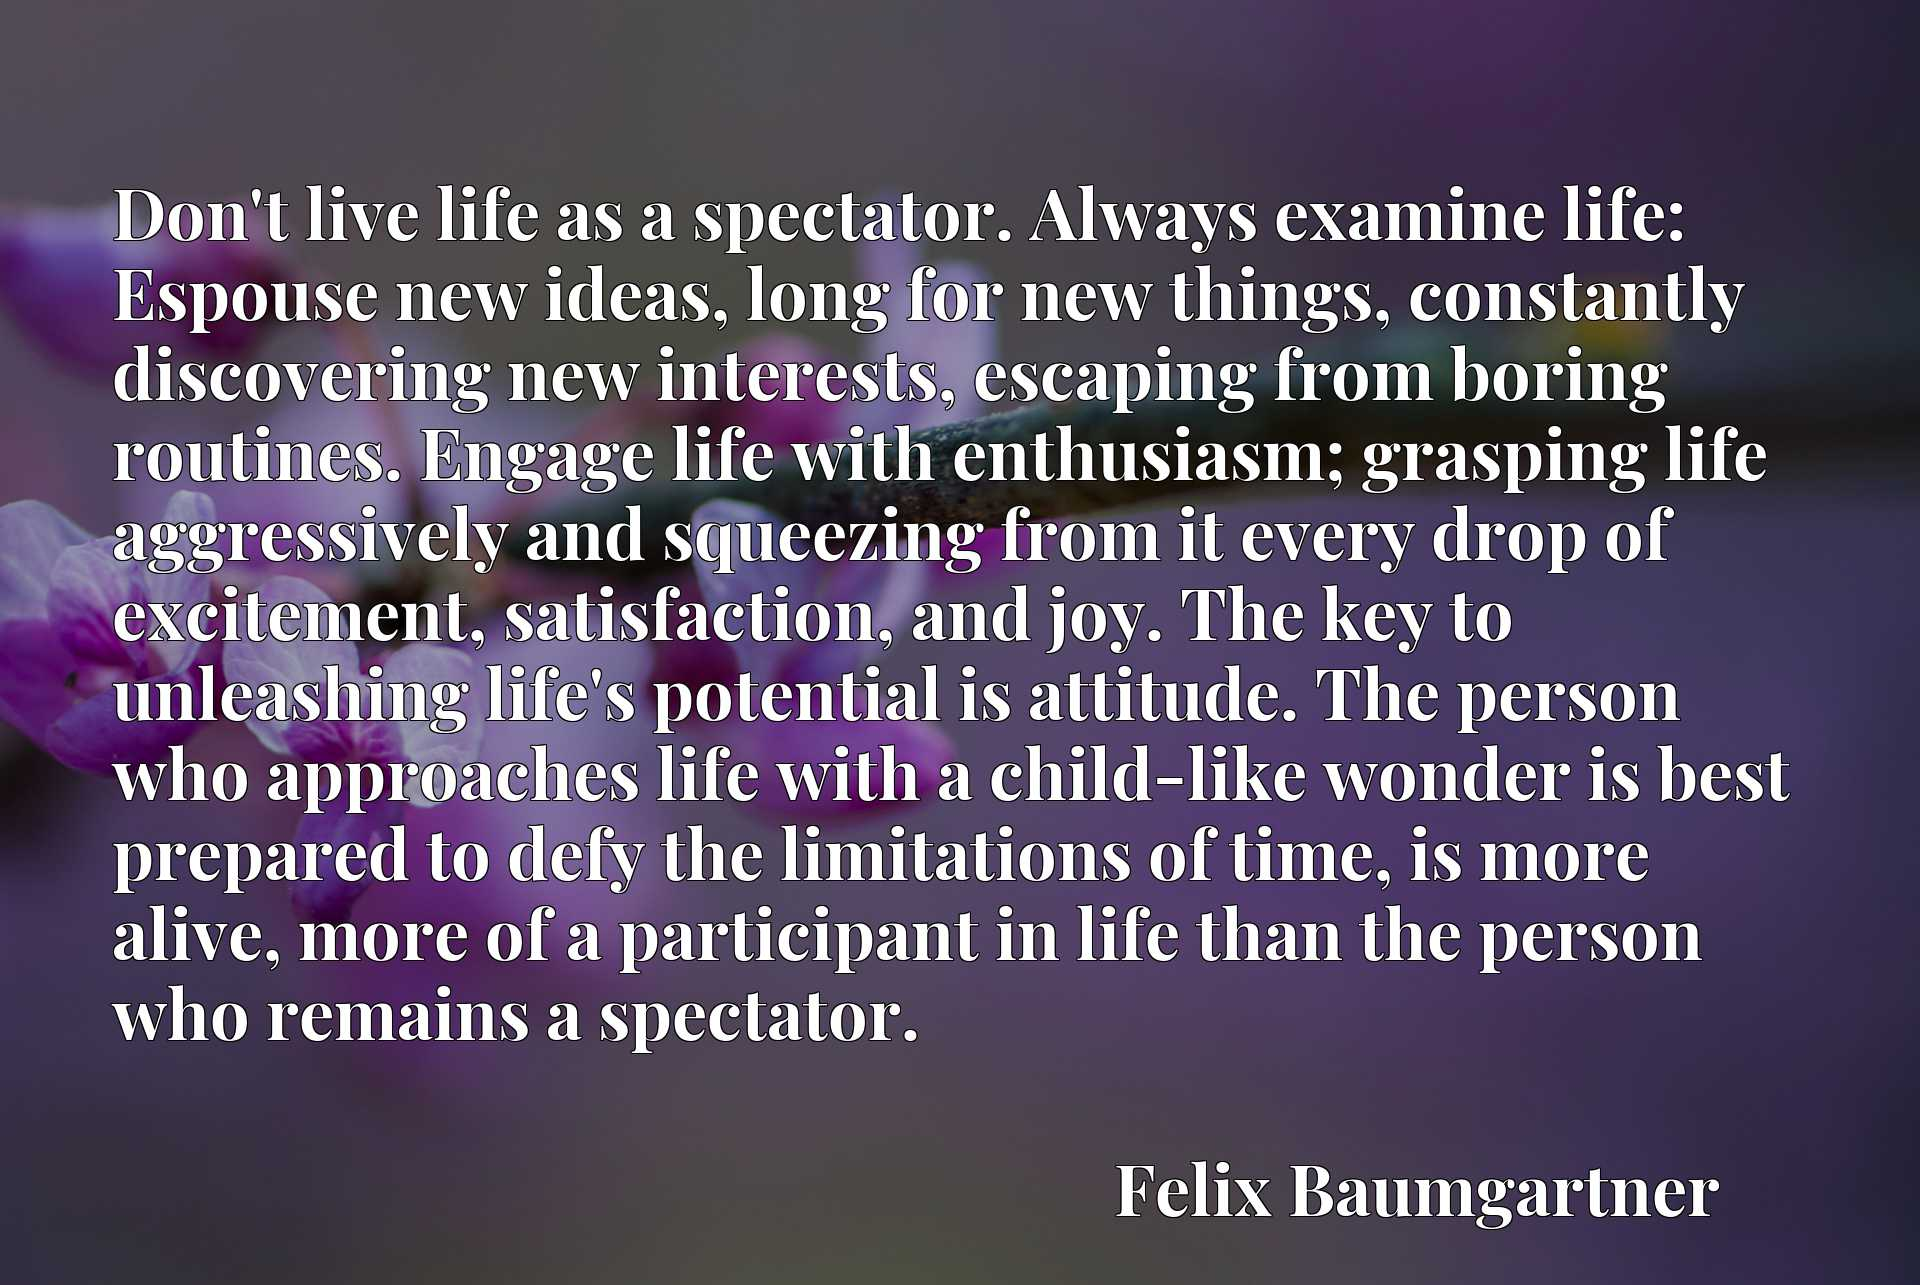 Don't live life as a spectator. Always examine life: Espouse new ideas, long for new things, constantly discovering new interests, escaping from boring routines. Engage life with enthusiasm; grasping life aggressively and squeezing from it every drop of excitement, satisfaction, and joy. The key to unleashing life's potential is attitude. The person who approaches life with a child-like wonder is best prepared to defy the limitations of time, is more alive, more of a participant in life than the person who remains a spectator.